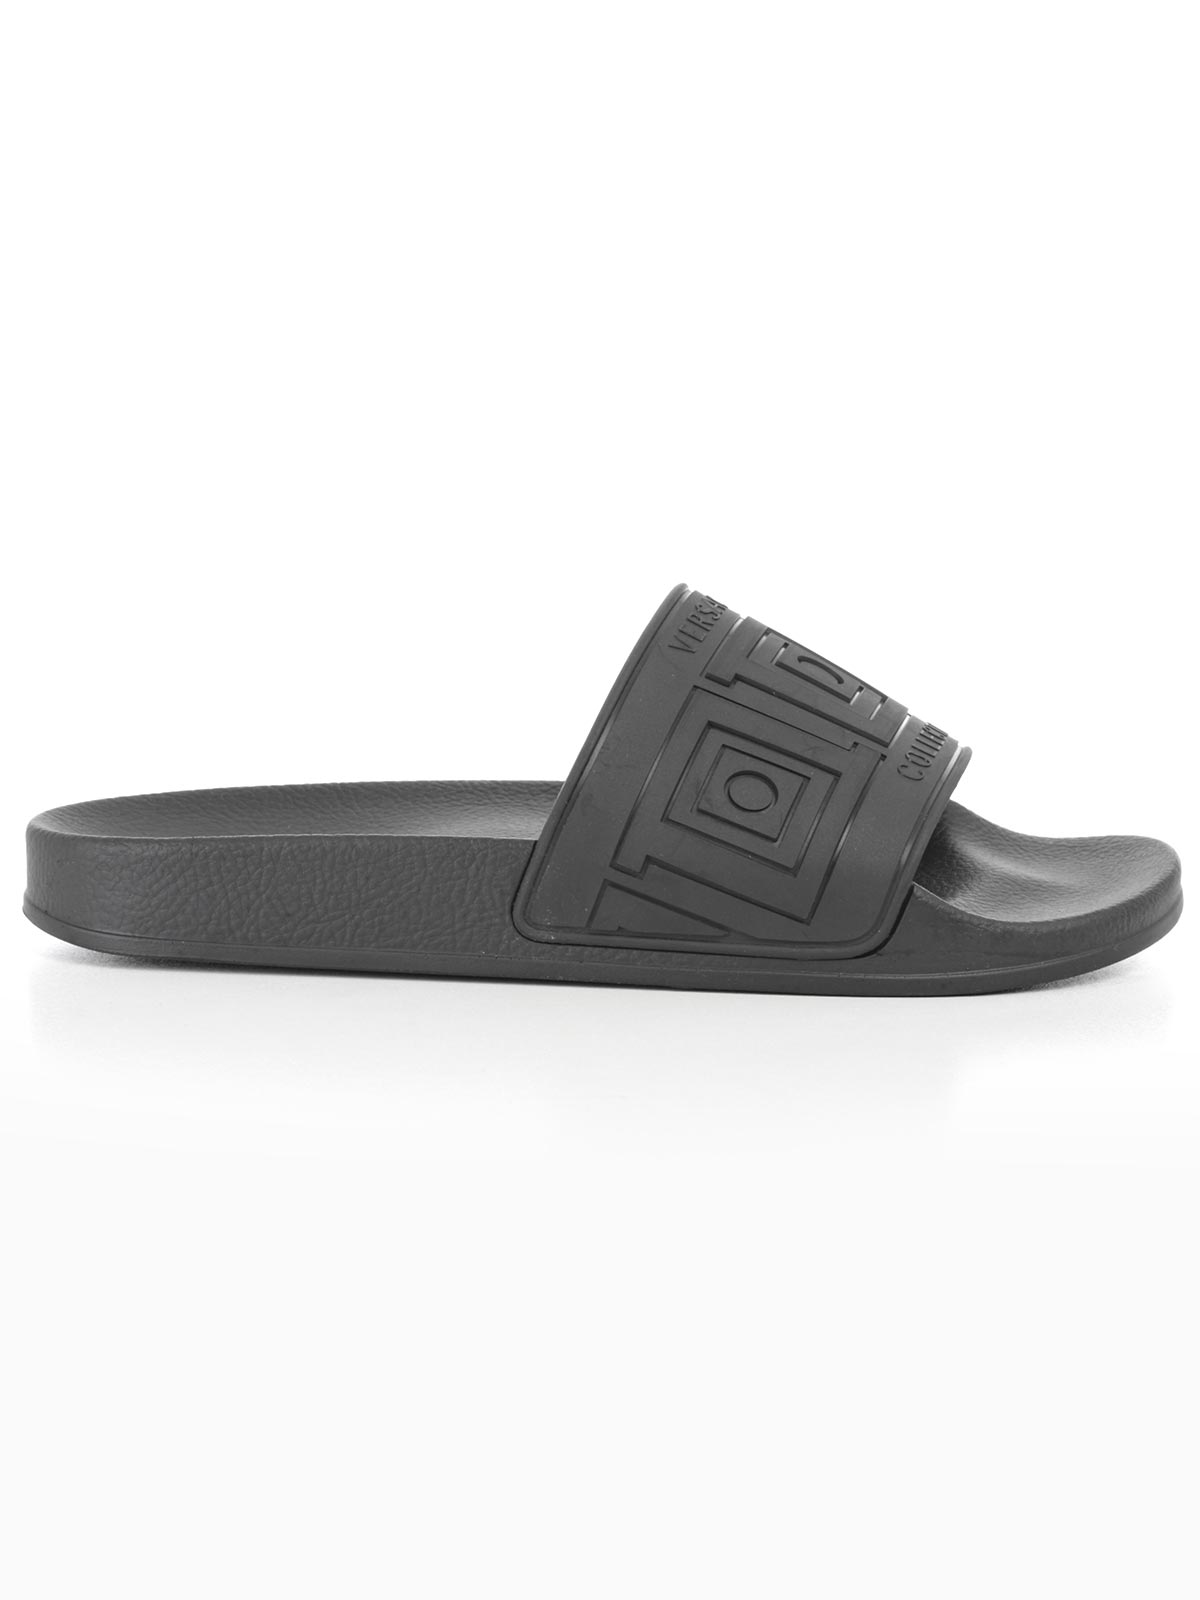 Picture of VERSACE COLLECTION Flip Flops